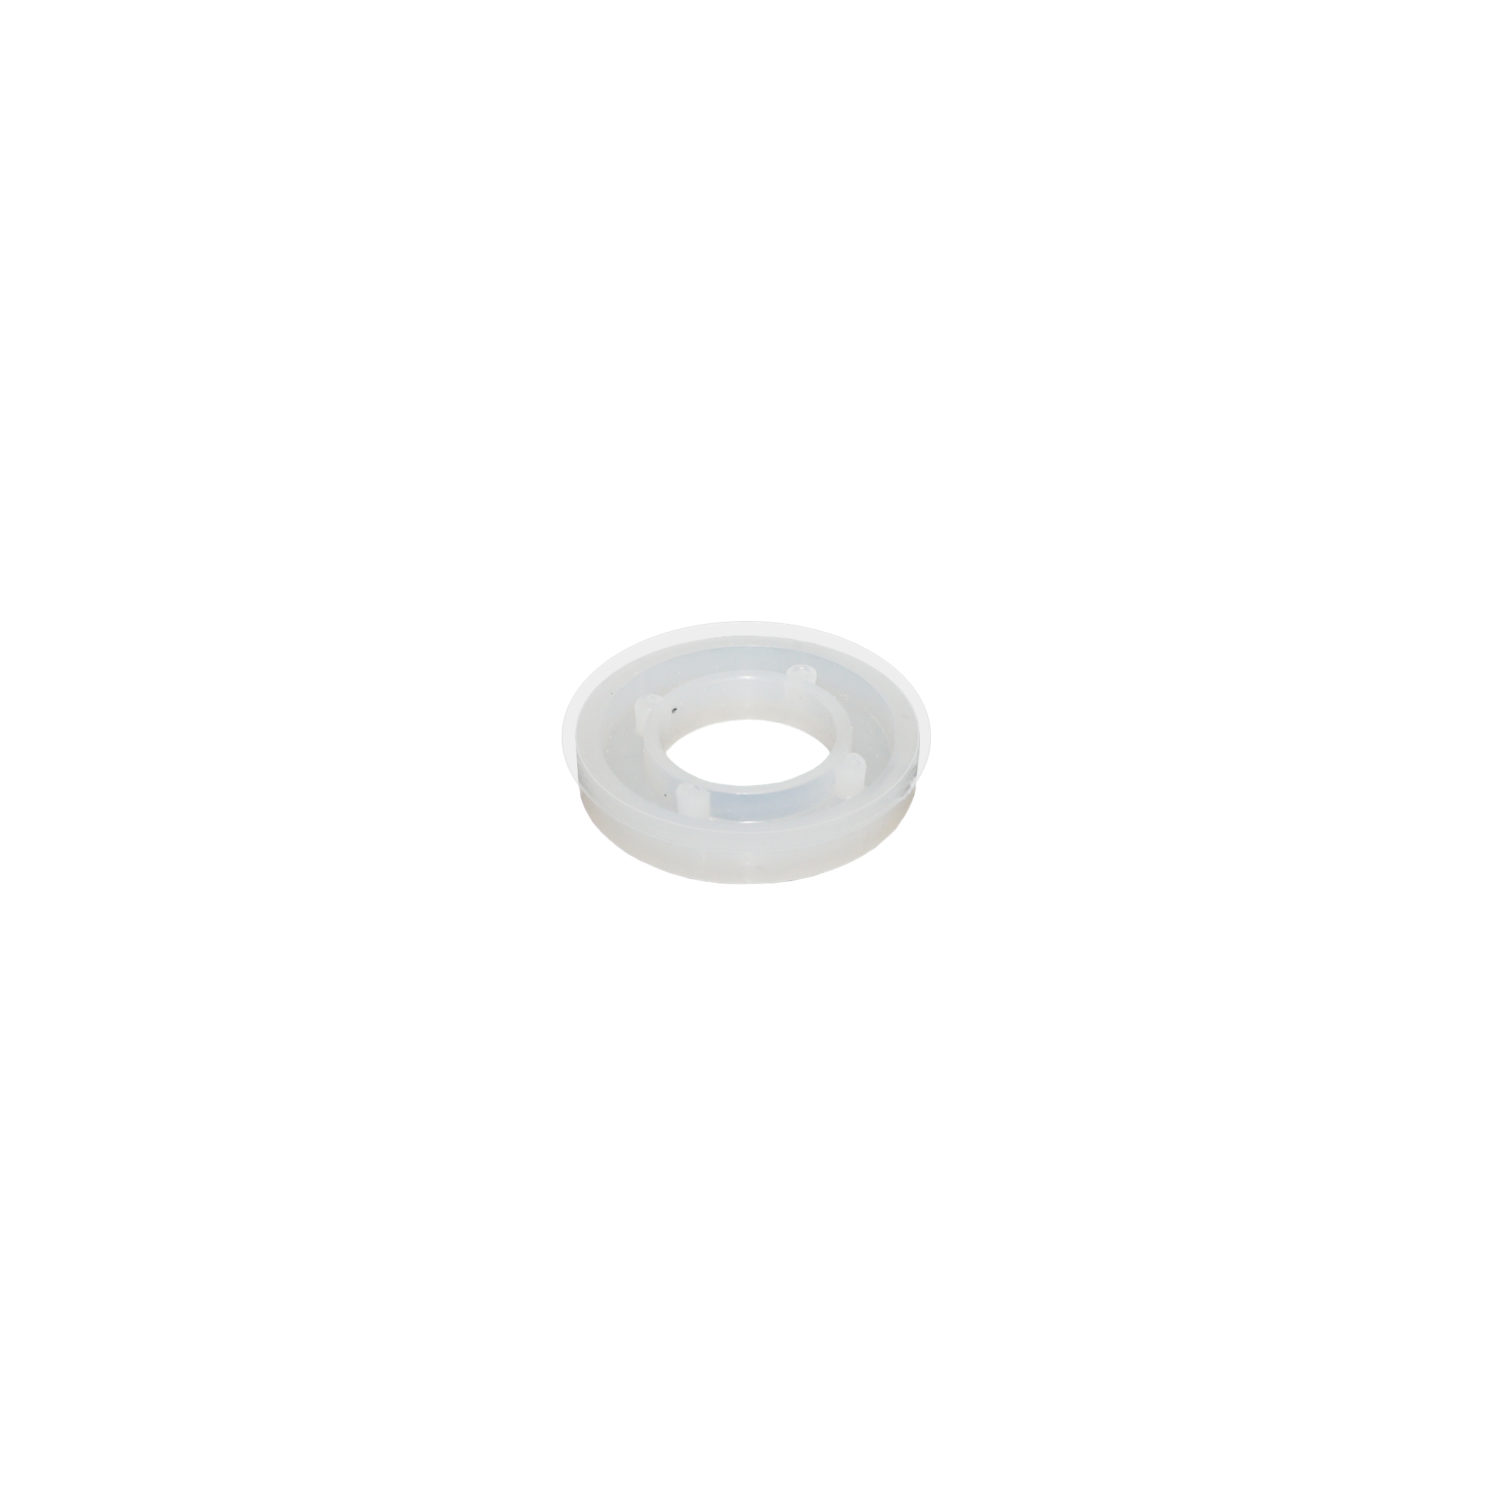 Distance ring for grinding wheel